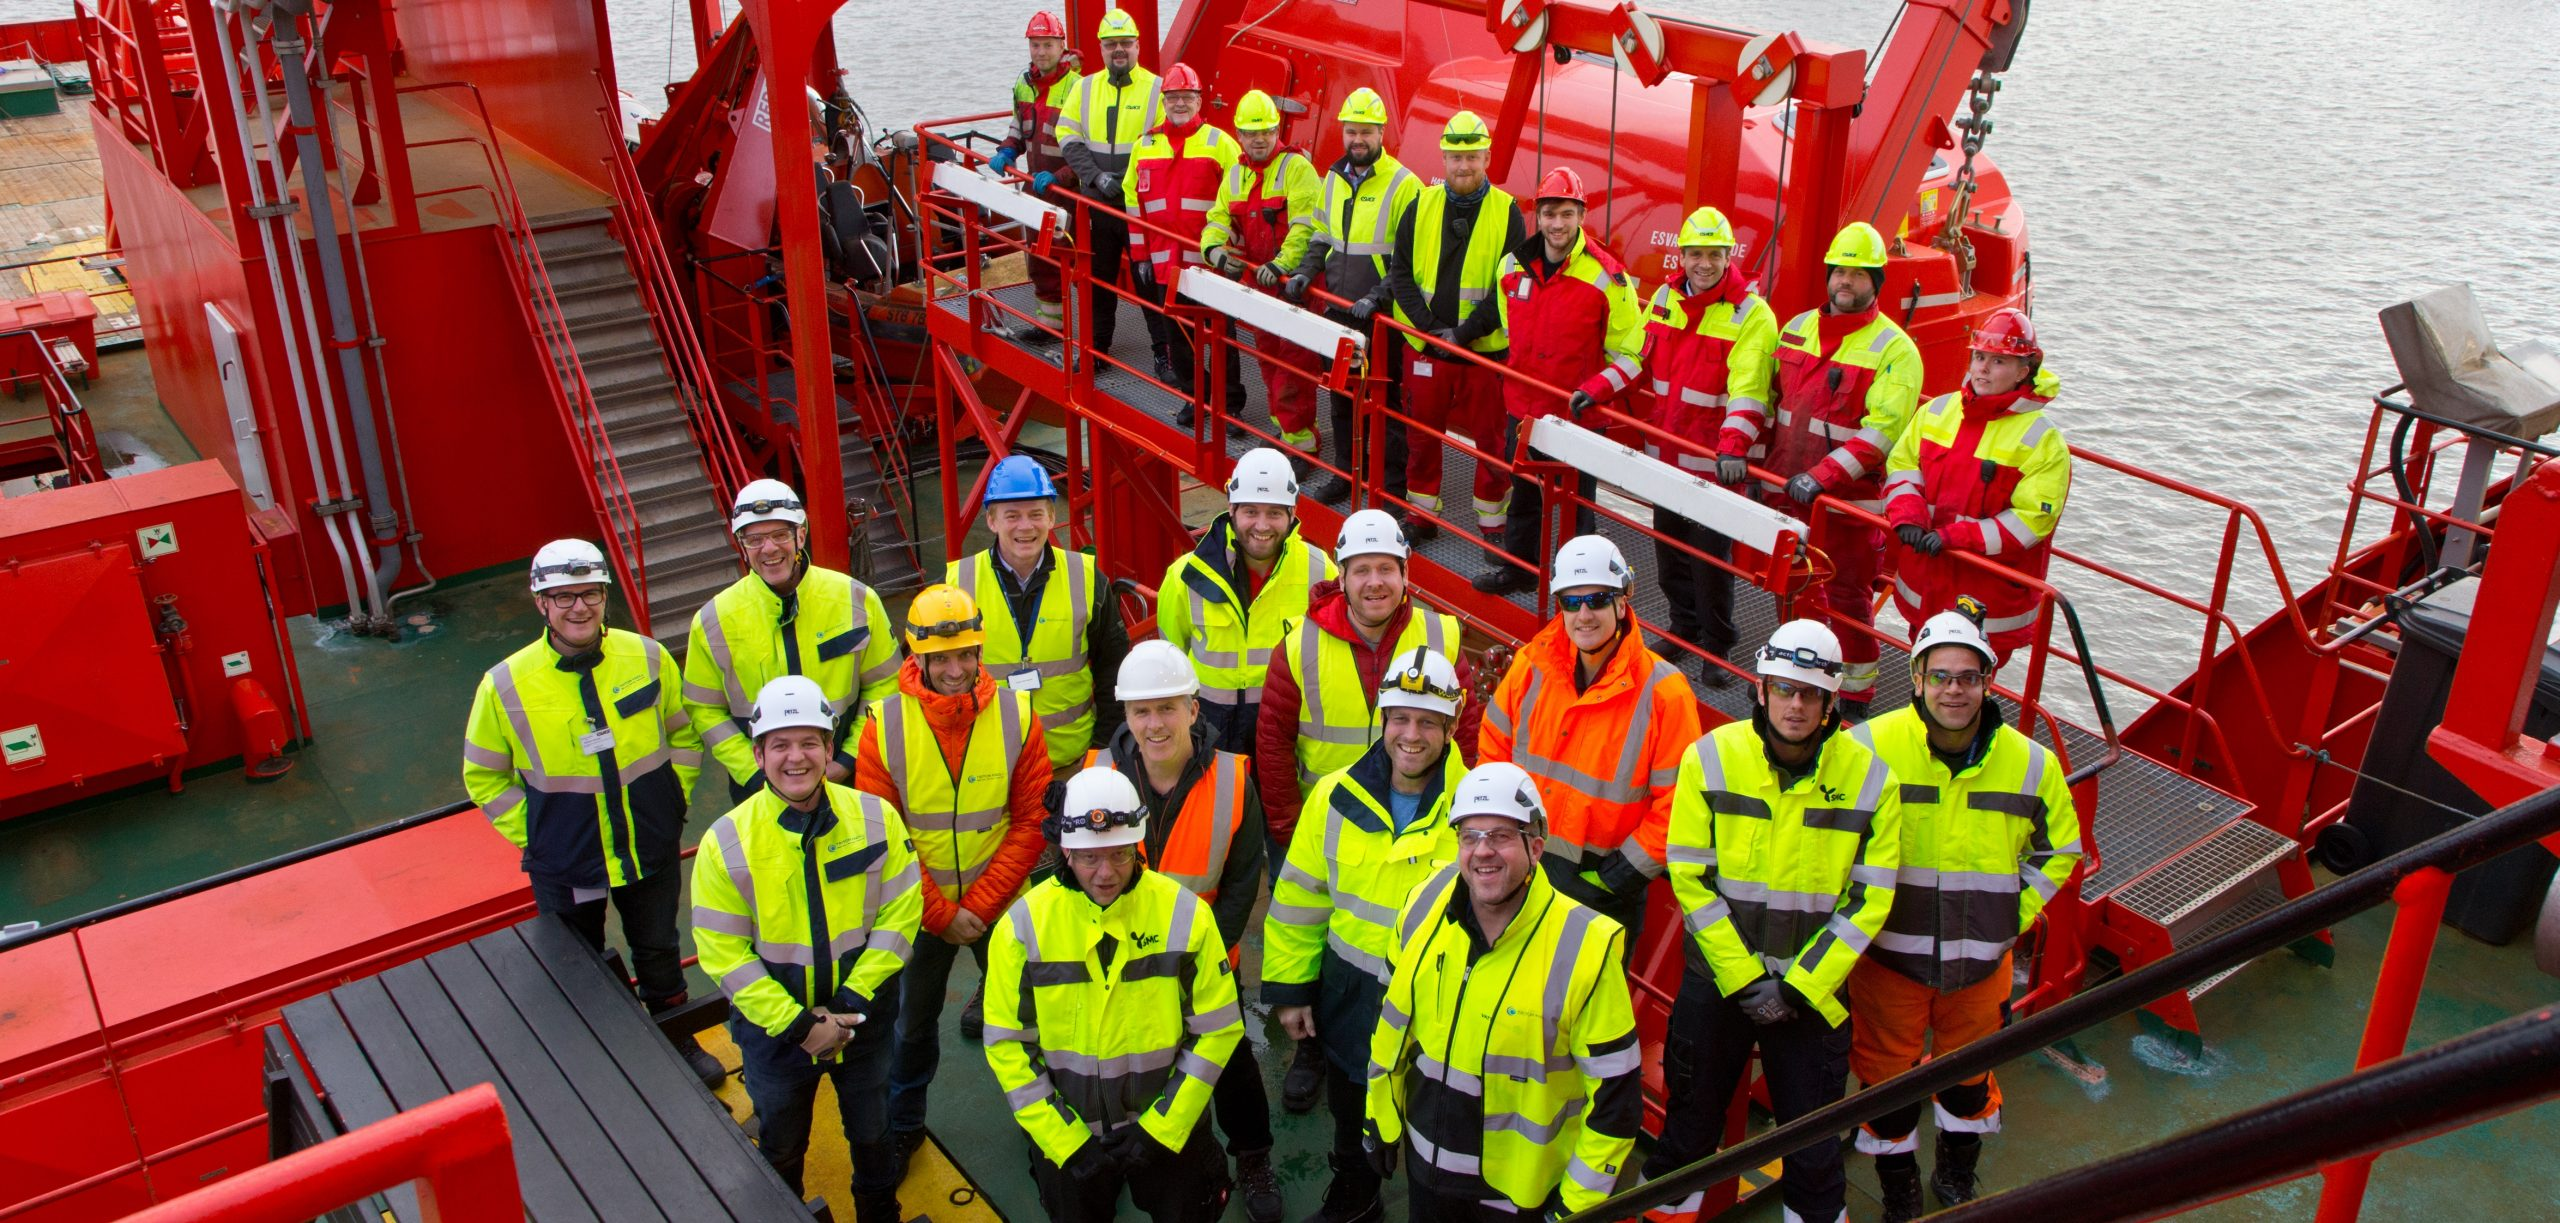 Meet the team managing construction of Triton Knoll 32 km offshore